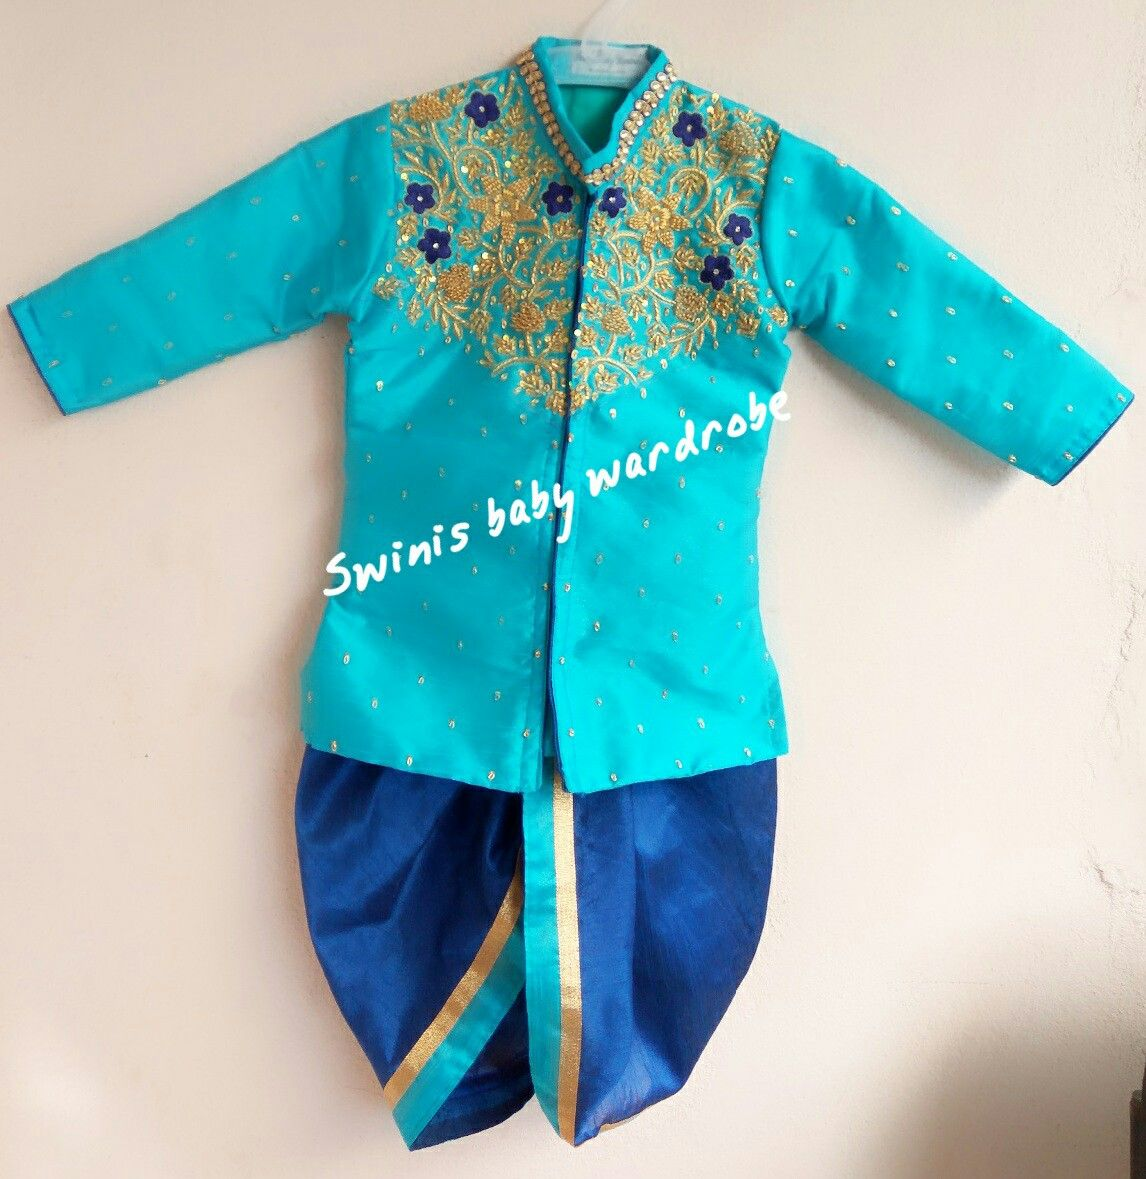 Pin by Teju Reddy on kids clothing | Pinterest | Babies, Indian wear ...